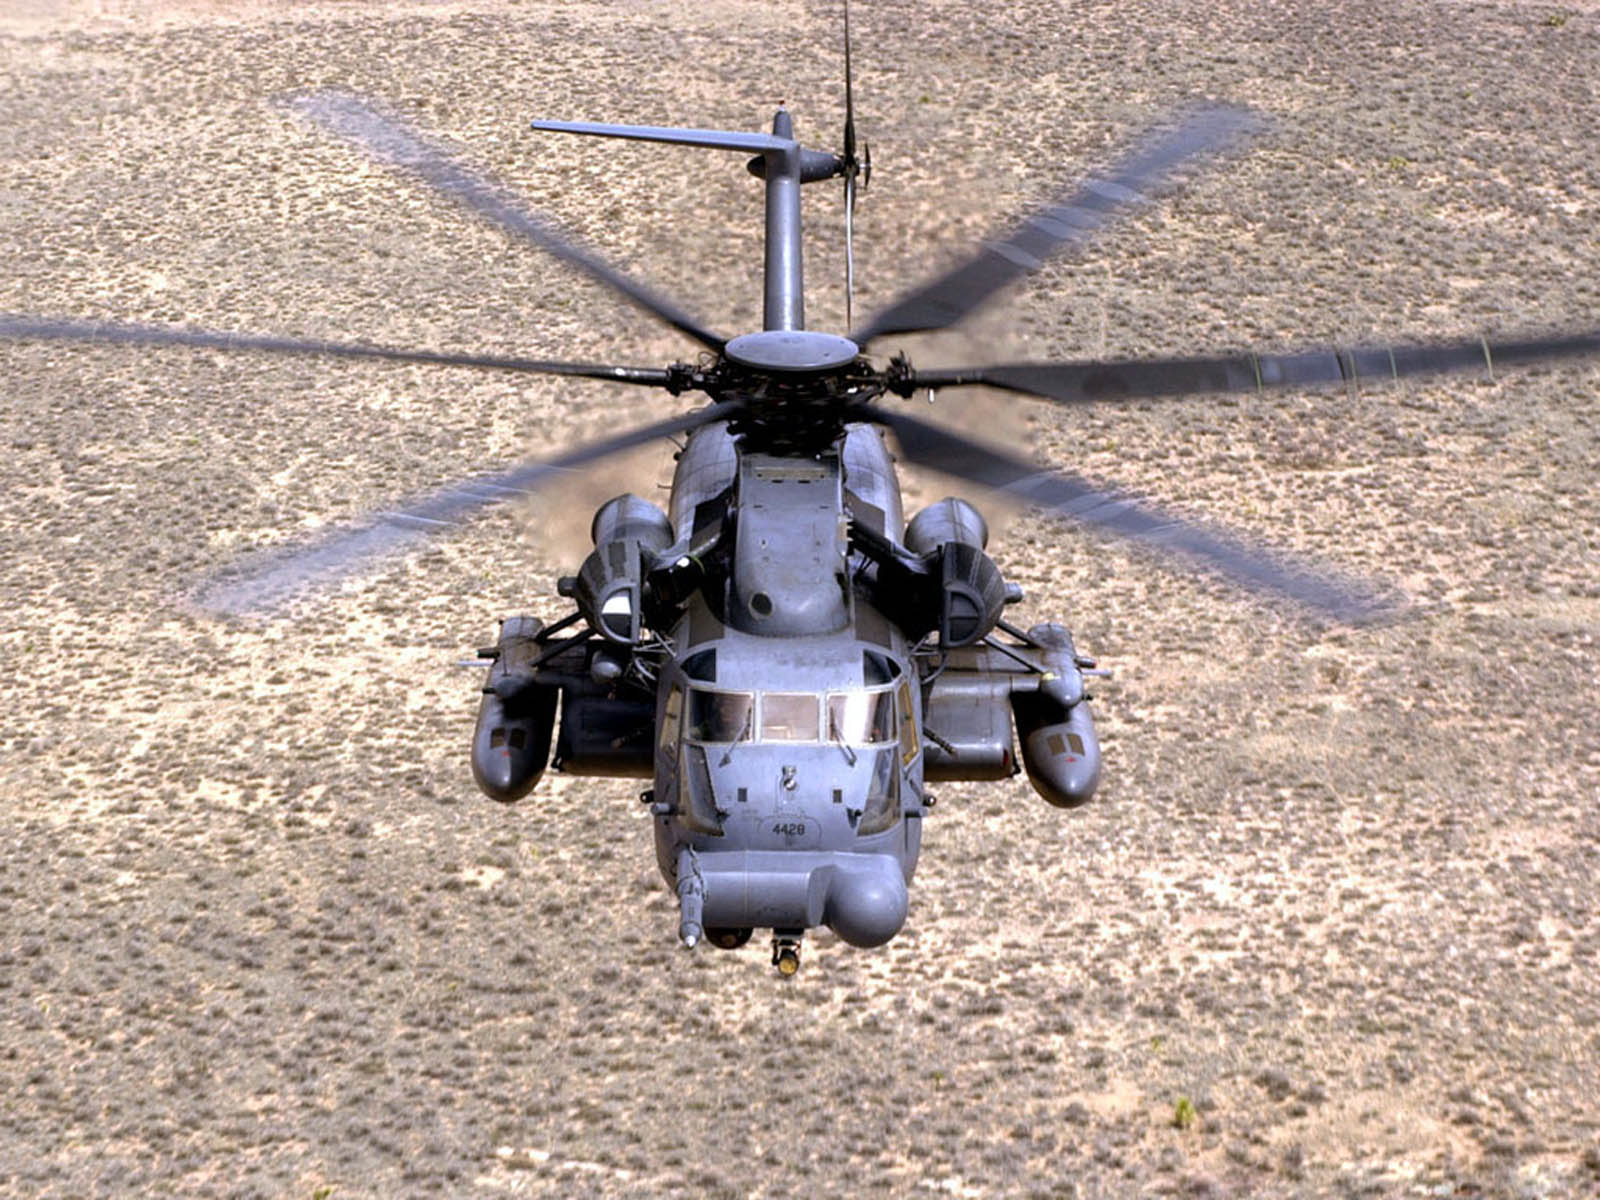 wallpapers: mh 53 Pave Low Helicopter Wallpapers